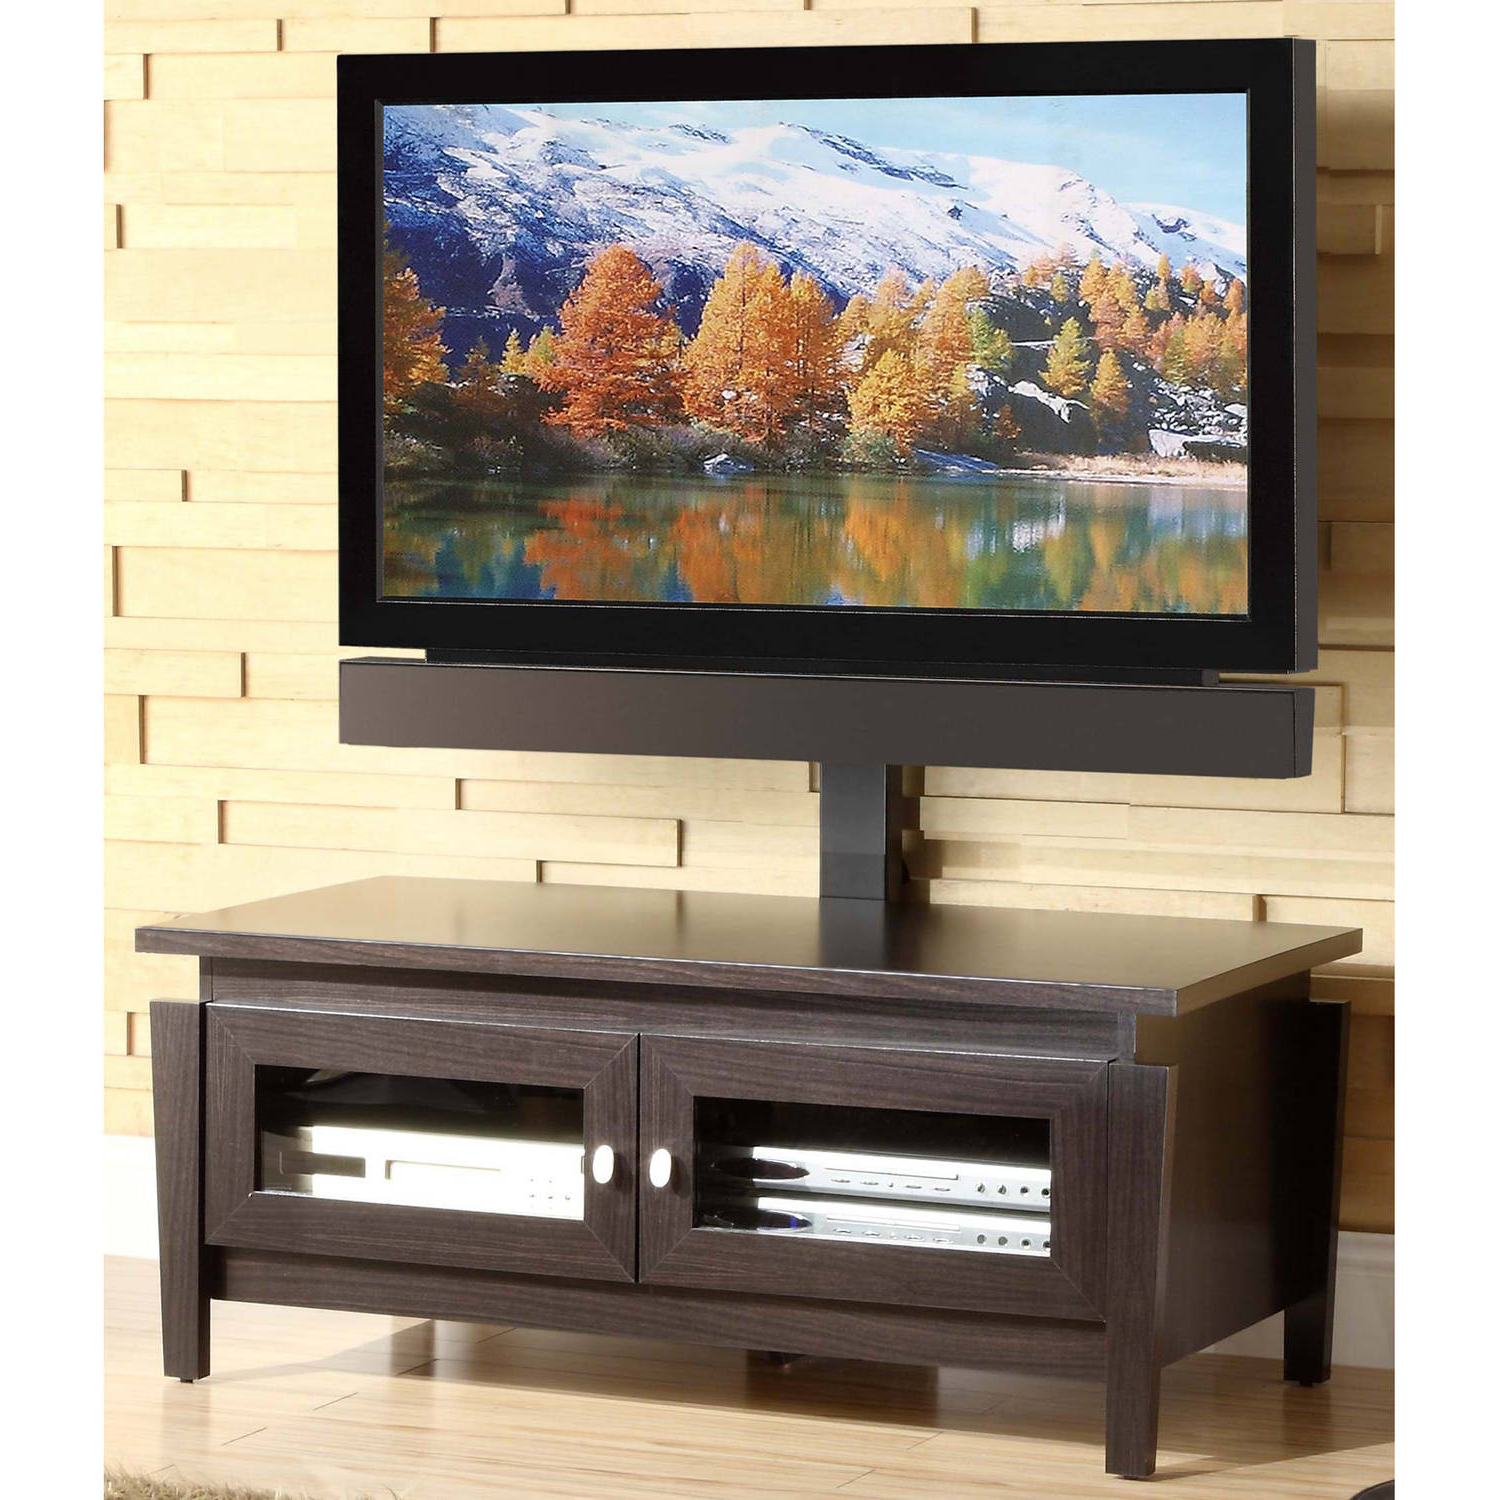 "Most Recently Released Whalen Tv Stand With Swinging Mount, For Tvs Up To 50"" – Walmart Inside Willa 80 Inch Tv Stands (View 6 of 20)"